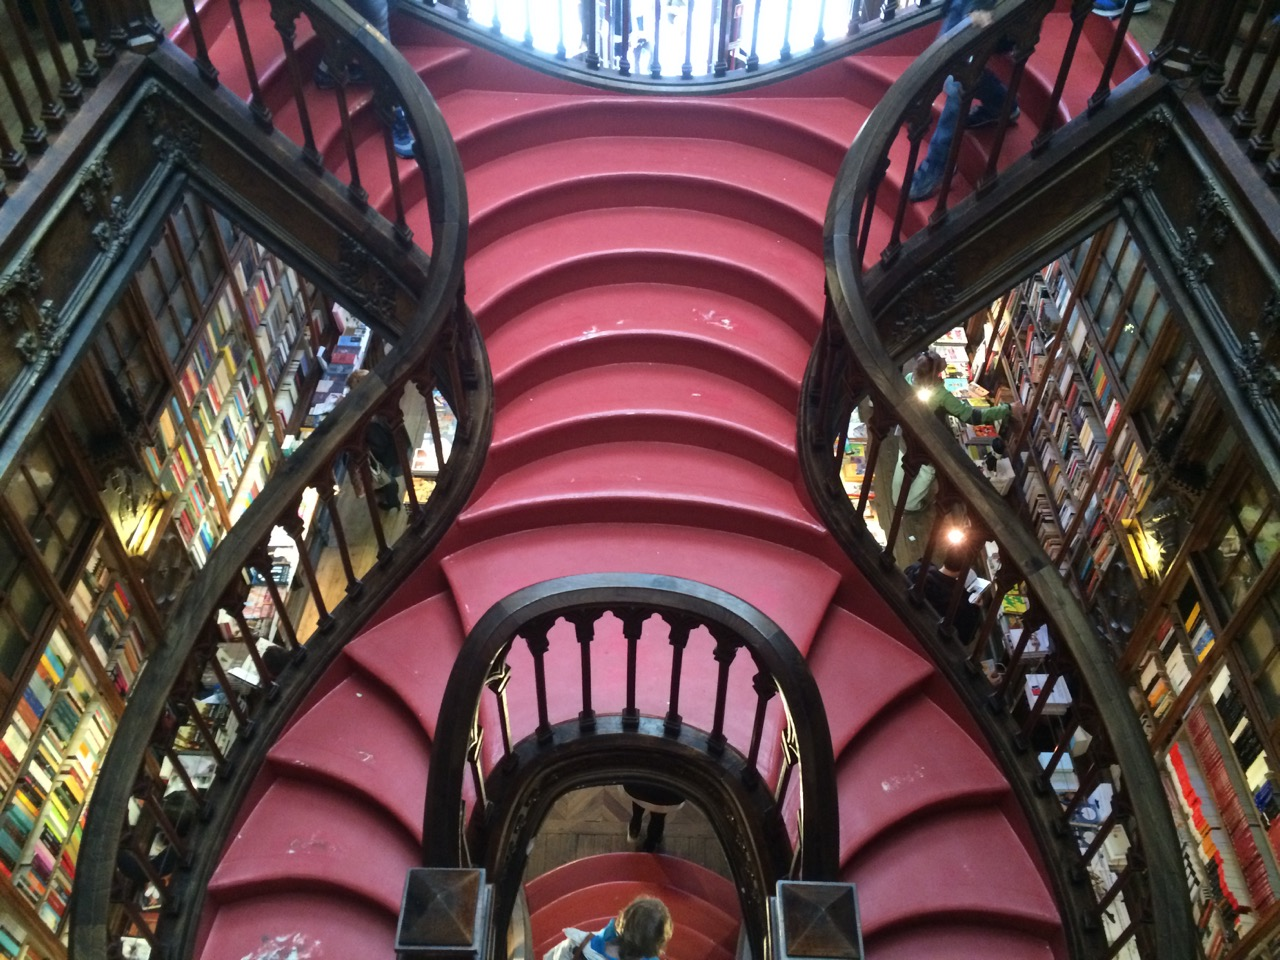 The famous crimson staircase. Sadly, it bears marks left by thousands of curious visitors.